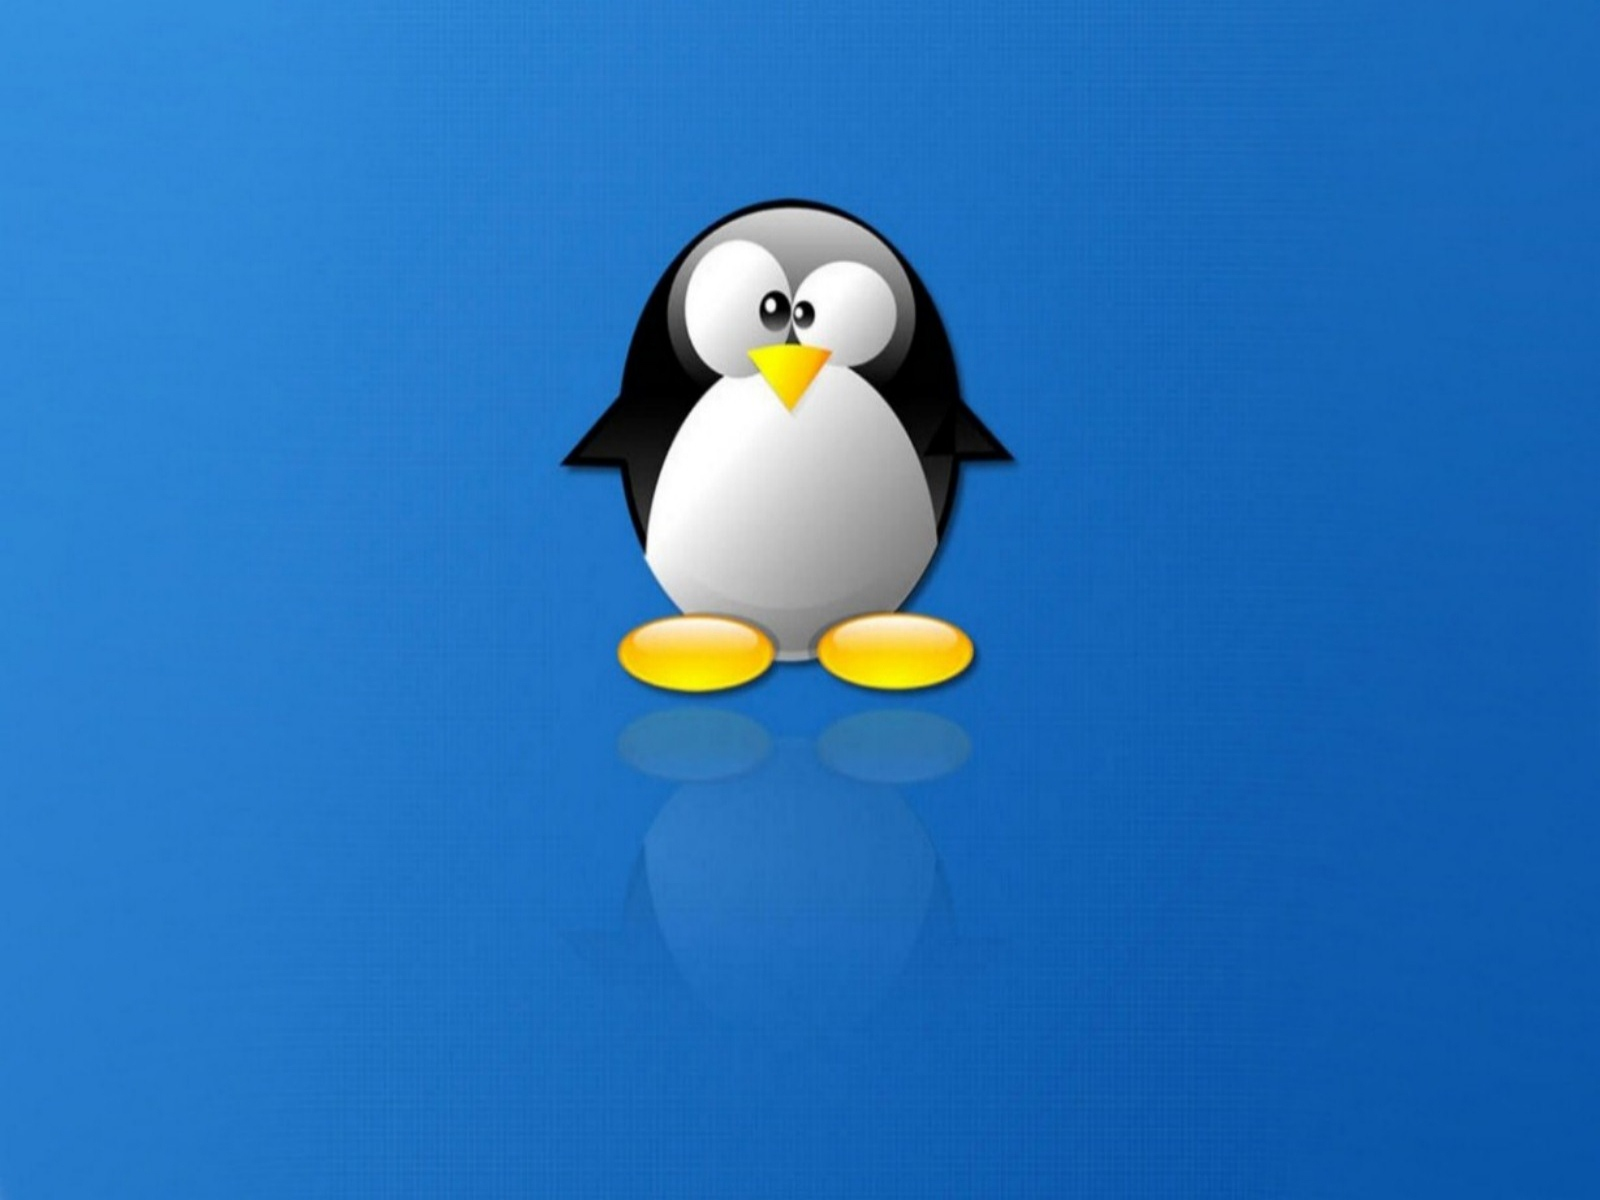 penguin wallpaper for your computer - wallpapersafari